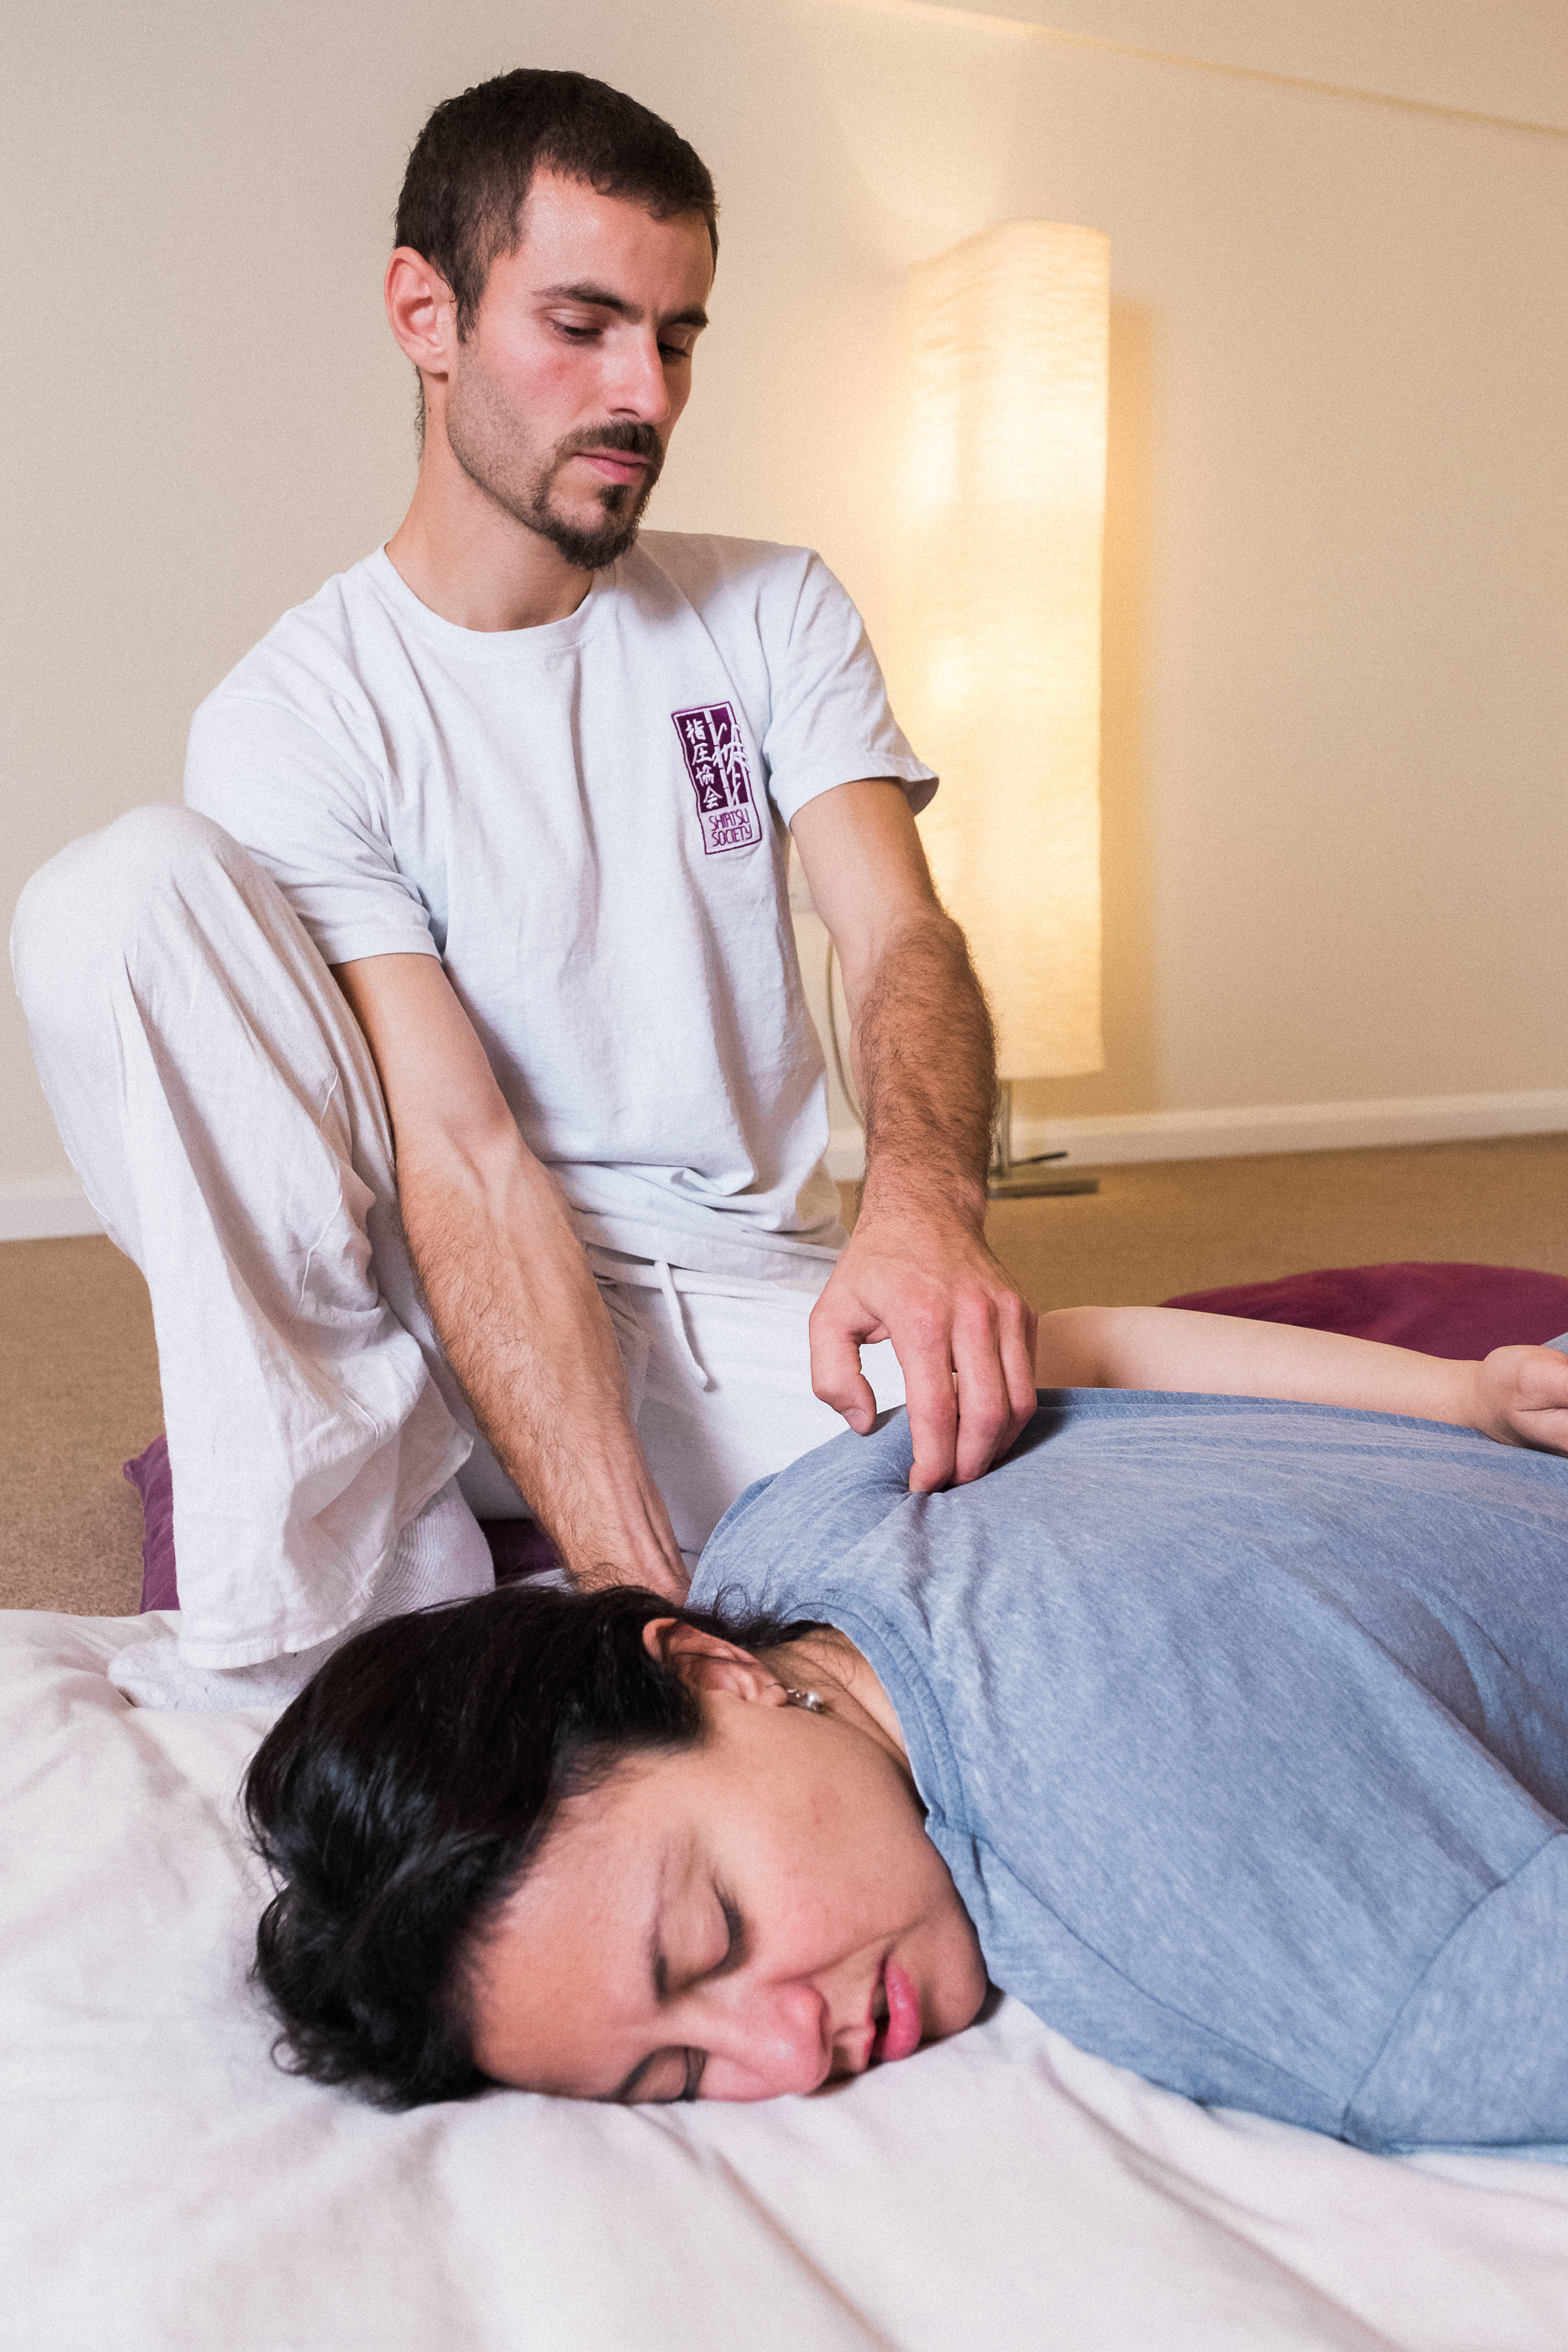 Massage-Edinburgh-Fern-Photography-0018-ZF-2290-64275-1-001-018.jpg